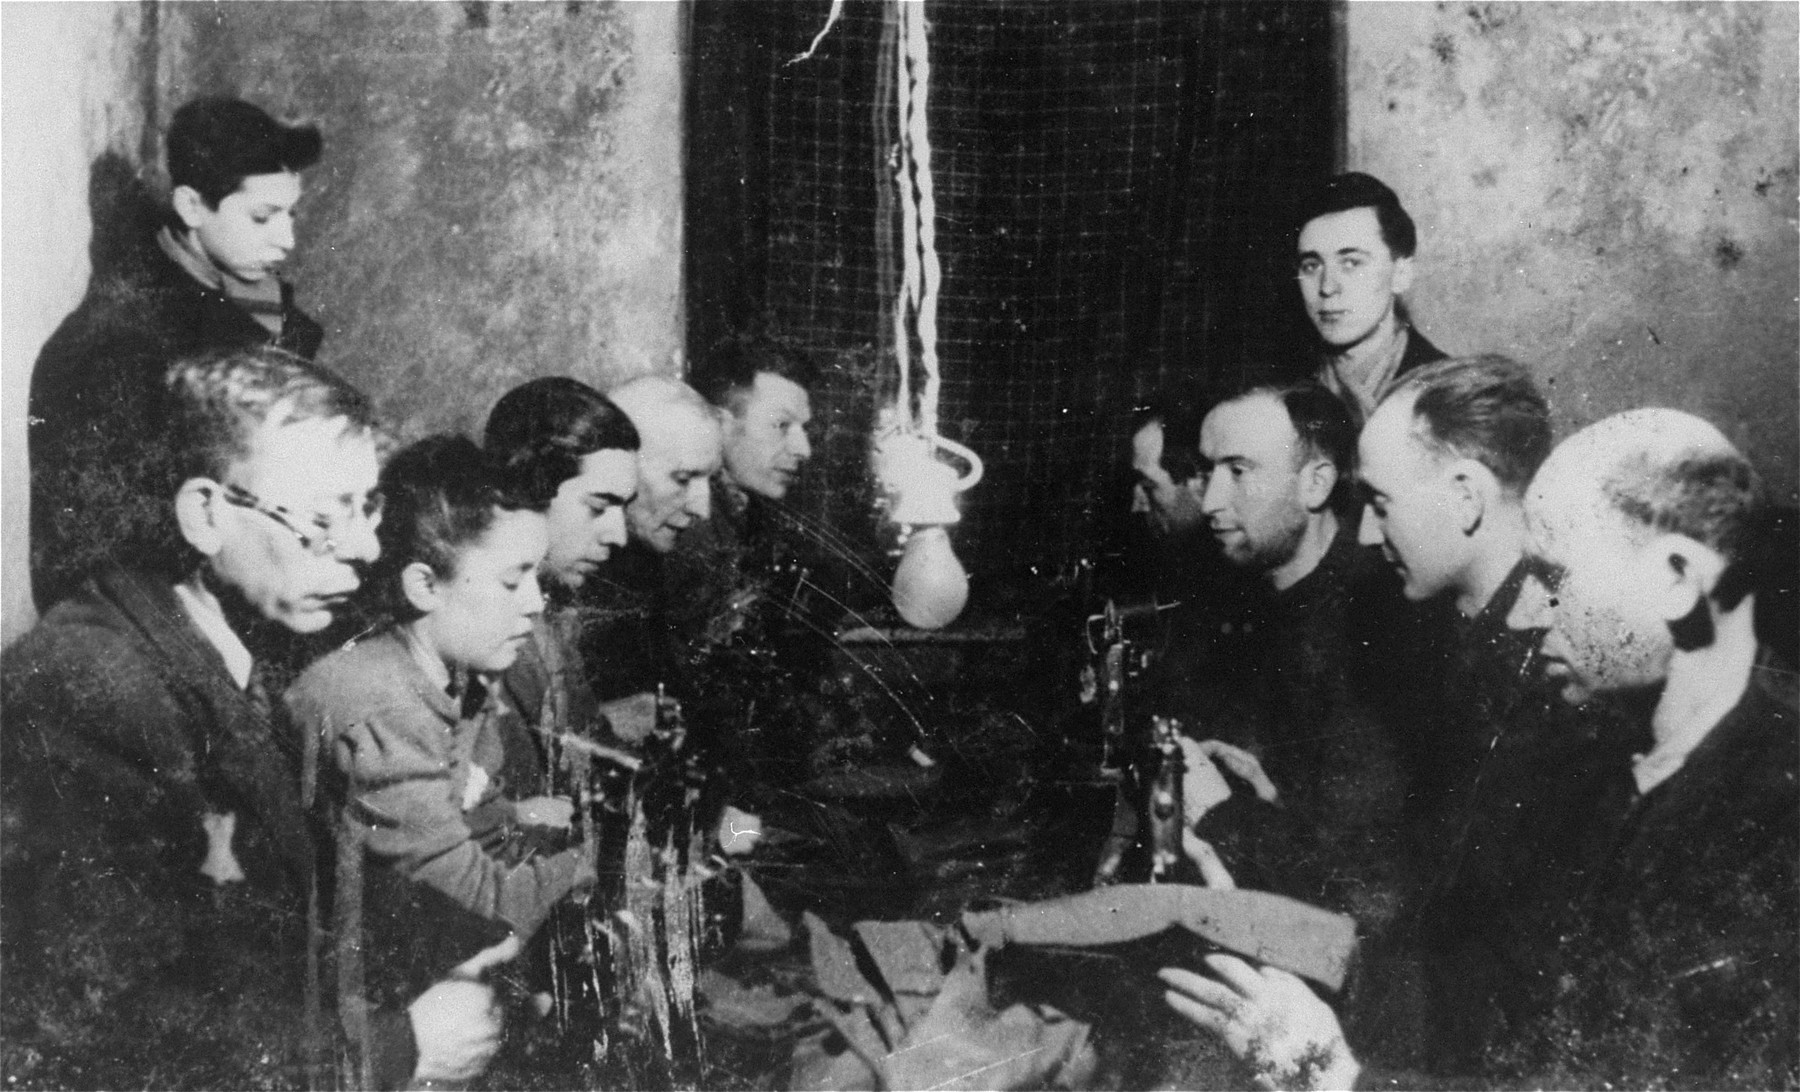 Jews sit a worktable sewing hats in a workshop in the Lodz ghetto.